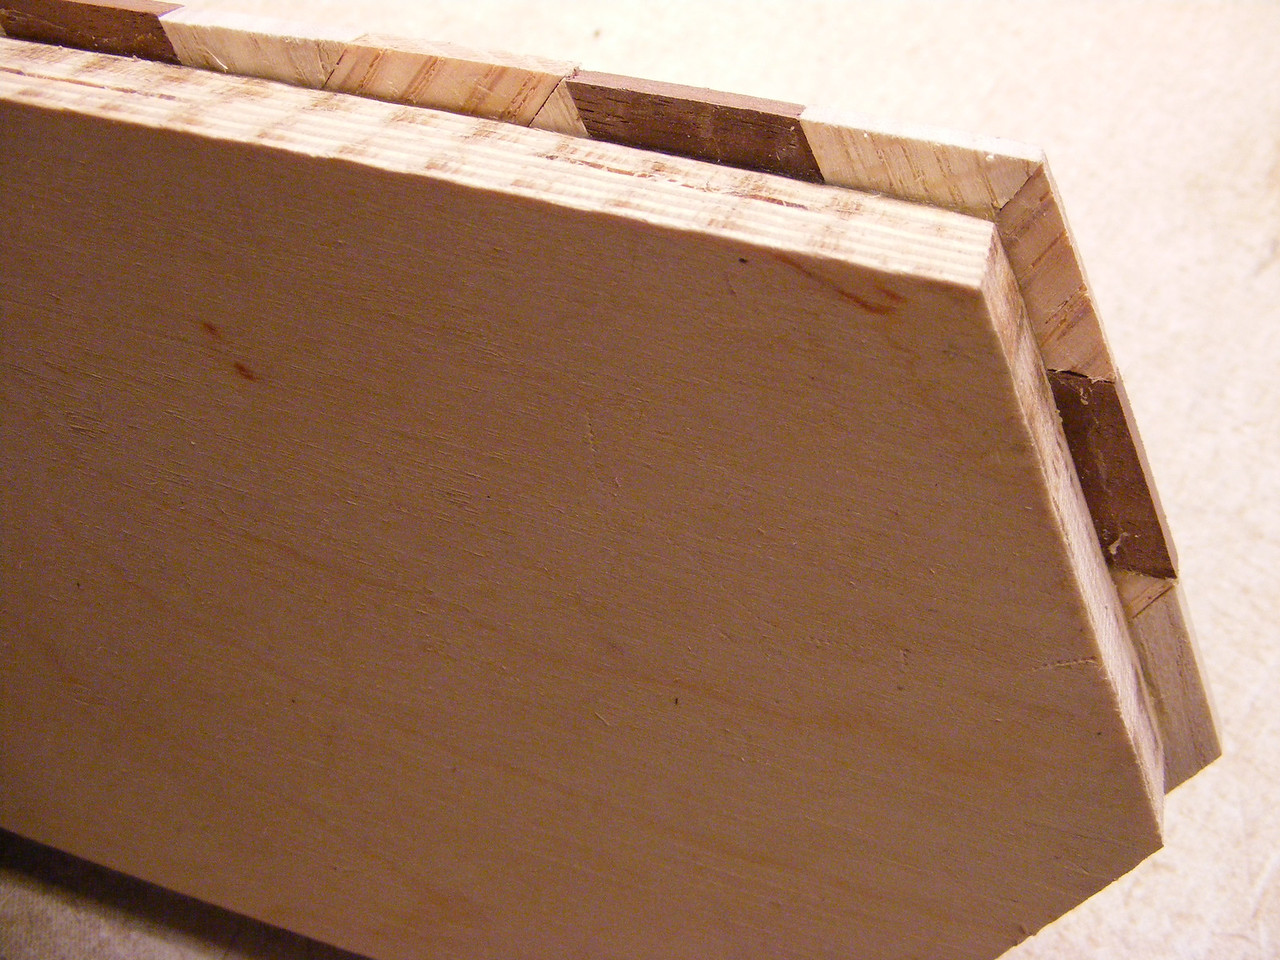 16 - Making a Tumbling Block Cribbage Board <br /> This leaves a clean square corner to glue the side pieces on.